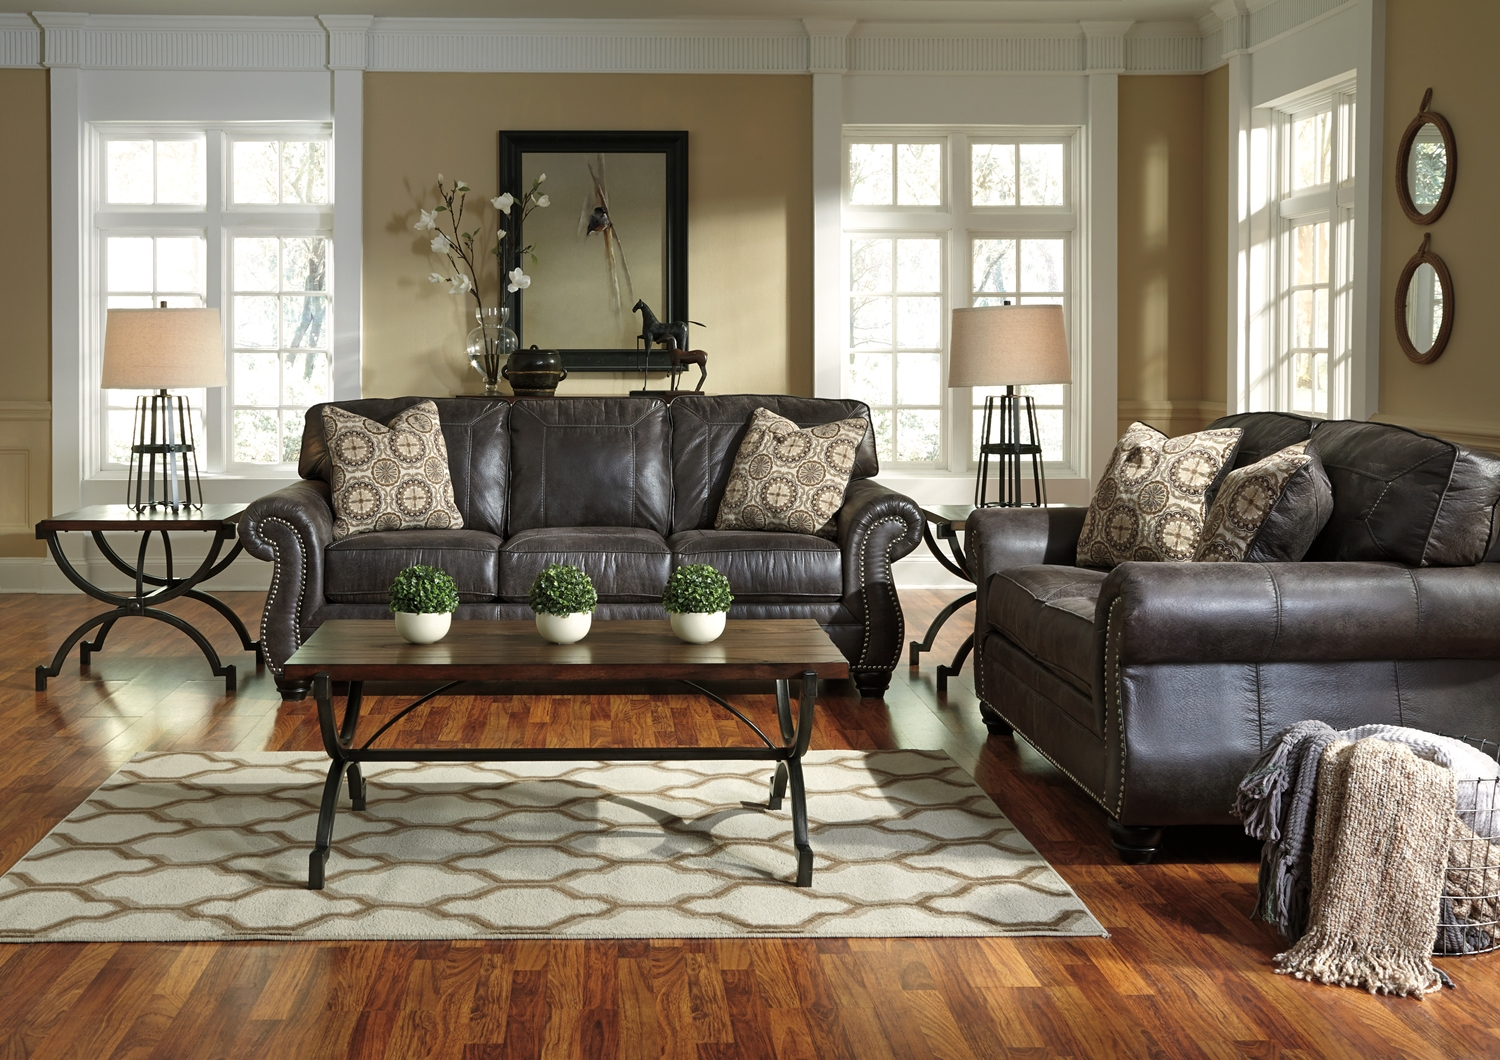 Breville charcoal traditional living room furniture set w nailhead trim - Living room furniture traditional ...